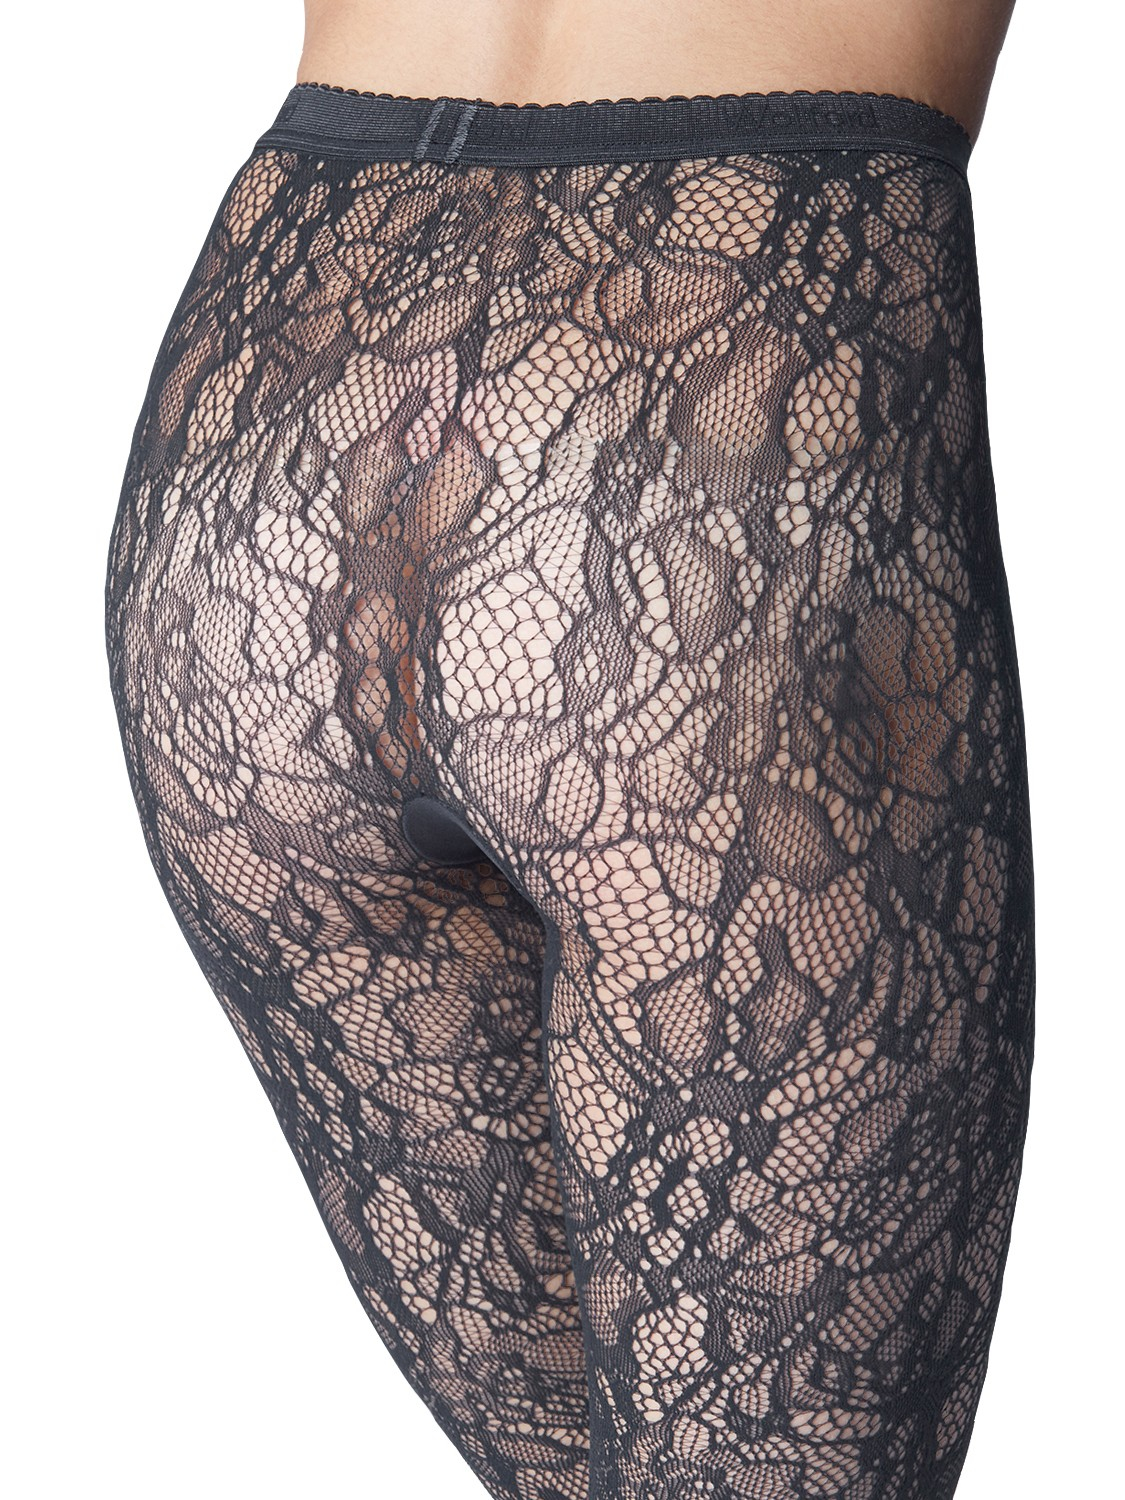 Wolford Clair Fashion Floral Lace Tights in Grey - Lyst